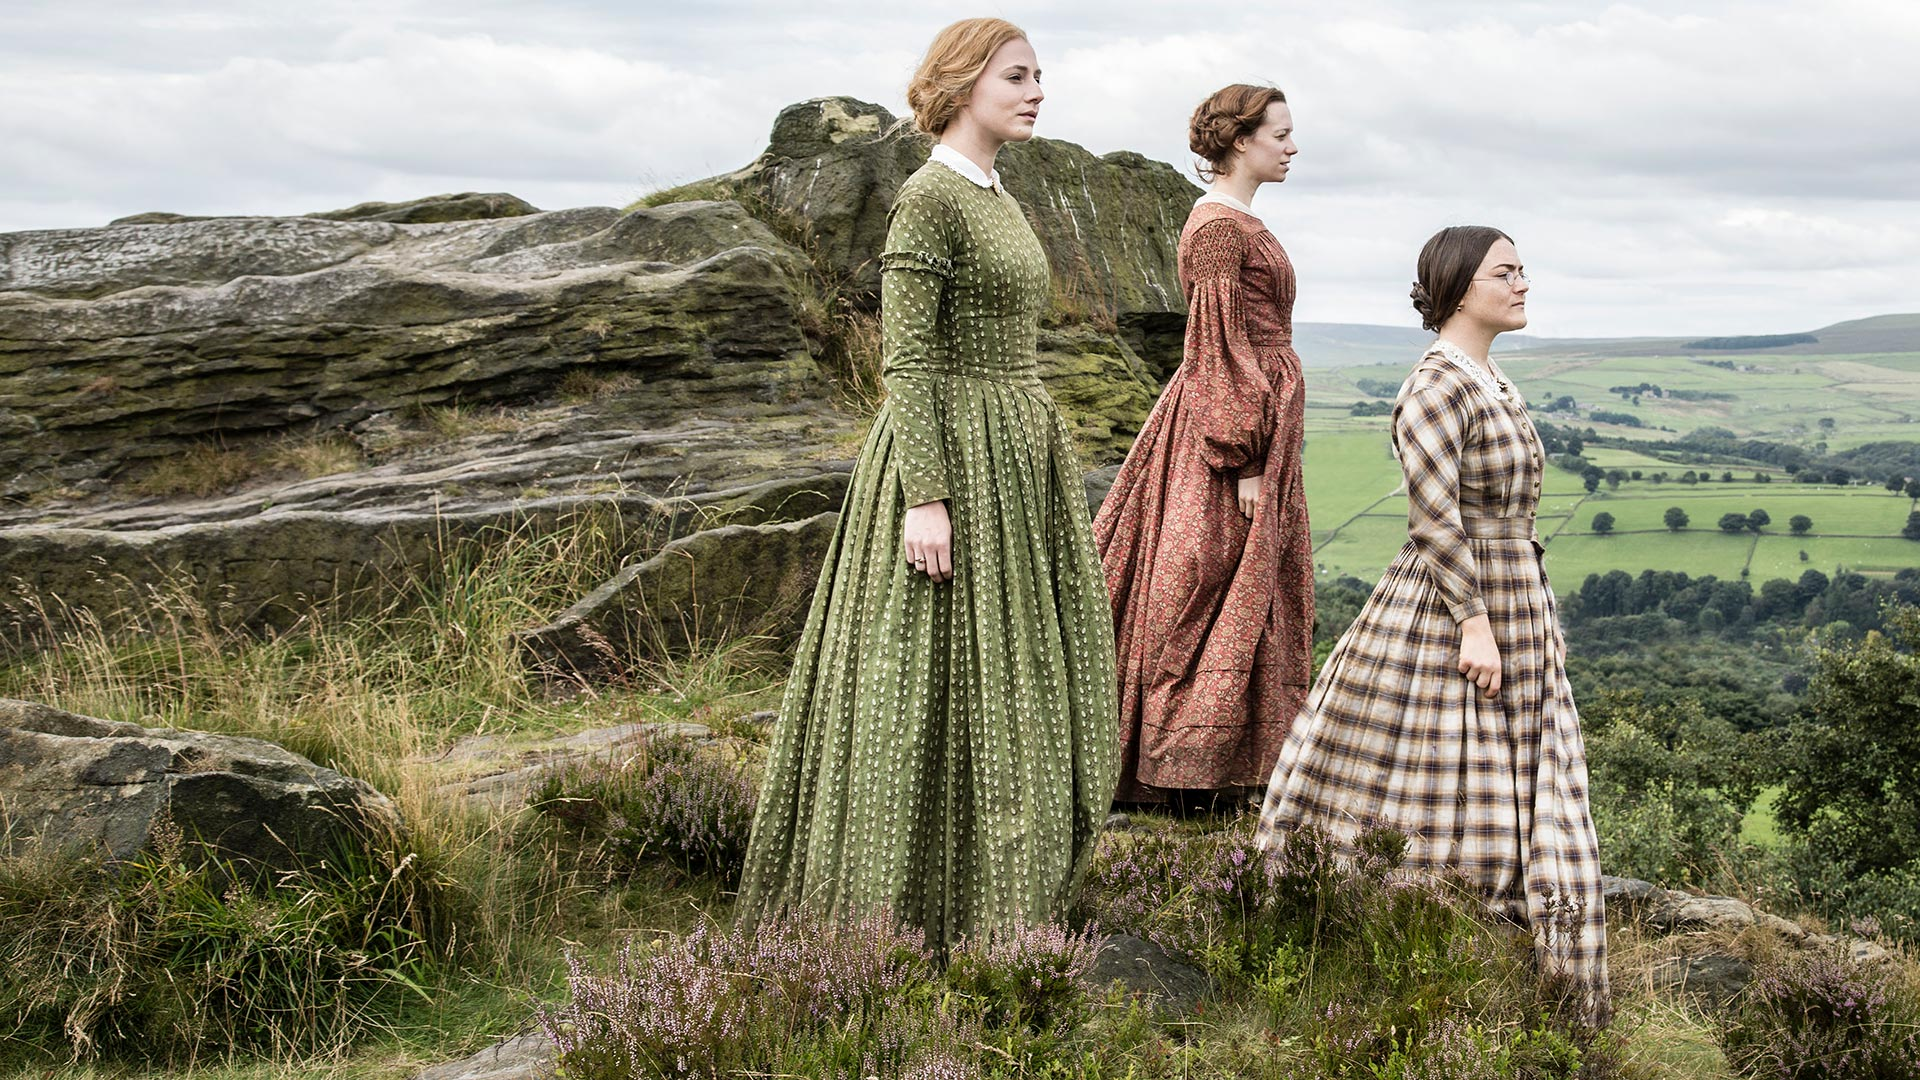 From left to right: Ann Bronte (CHARLIE MURPHY), Emily Bronte (CHLOE PIRRIE), and Charlotte Bronte (FINN ATKINS)